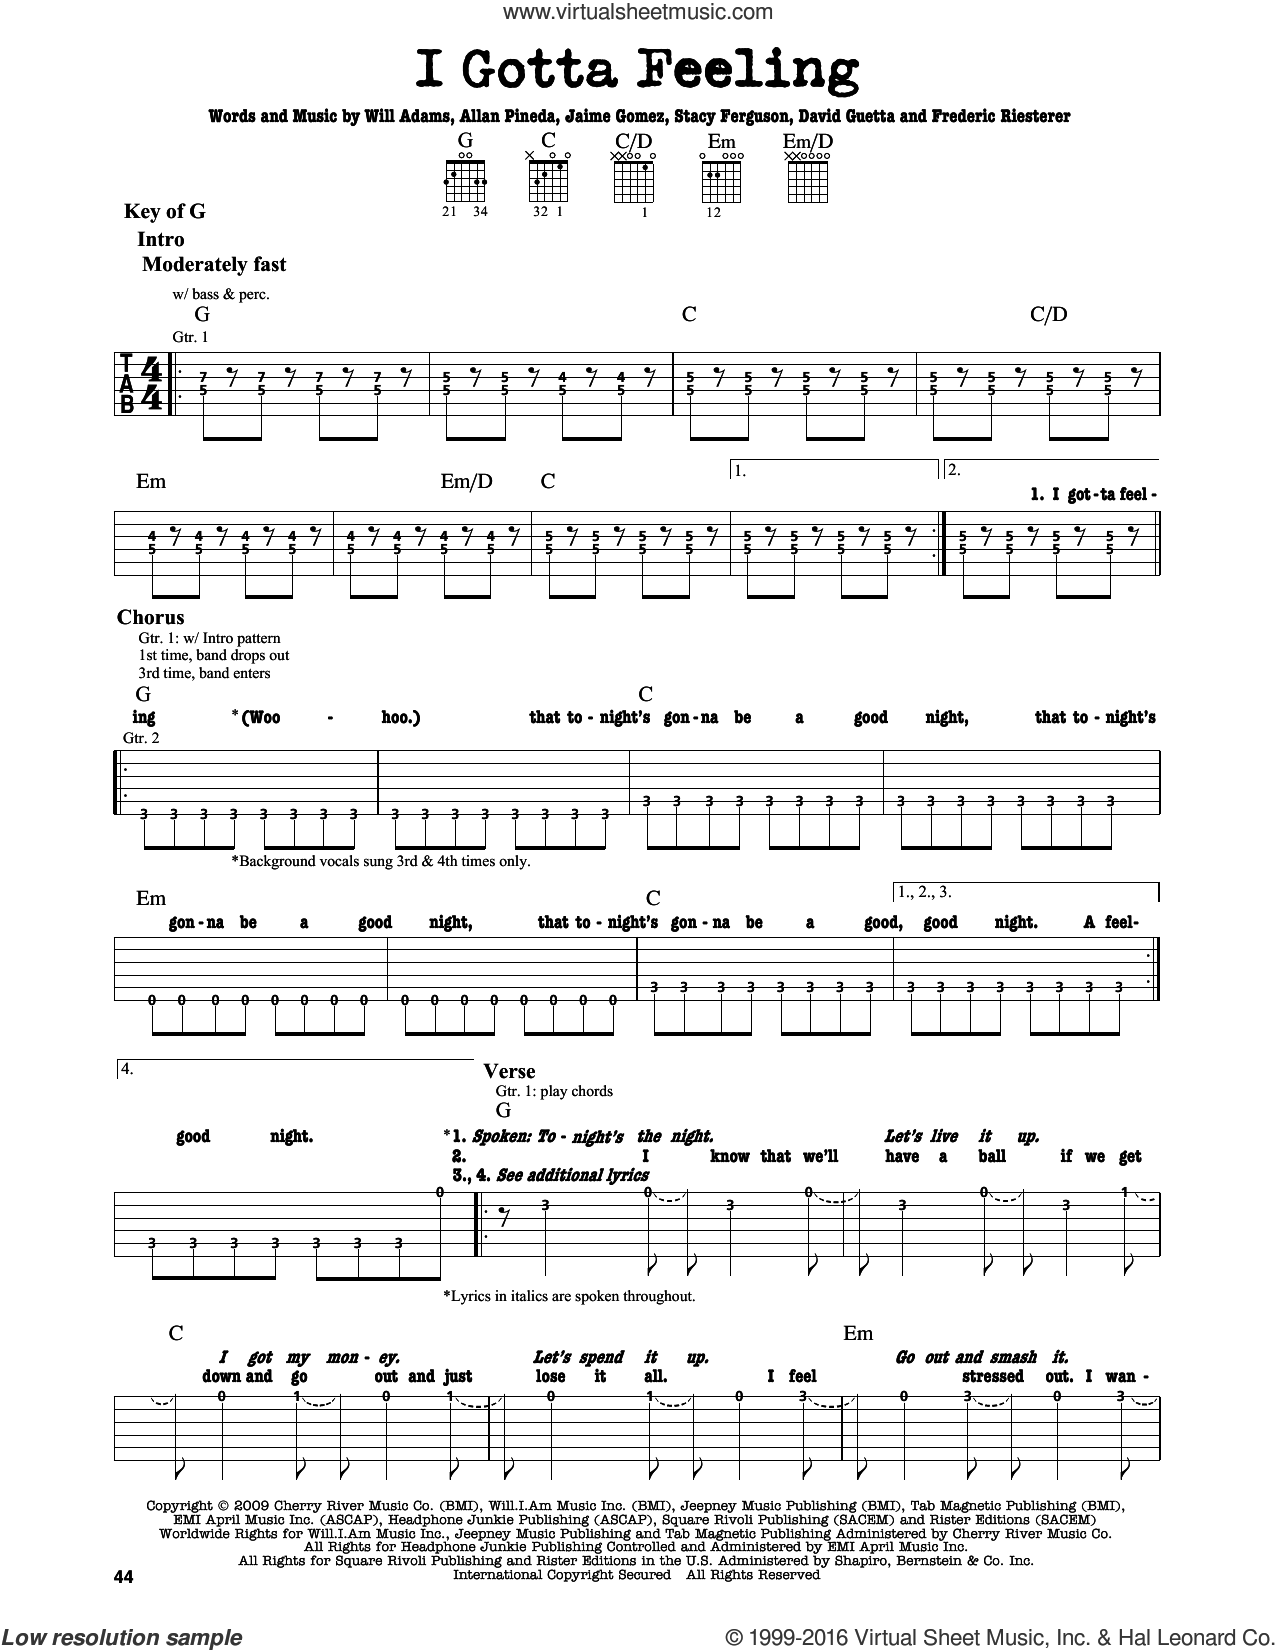 I Gotta Feeling sheet music for guitar solo (lead sheet) by Will Adams